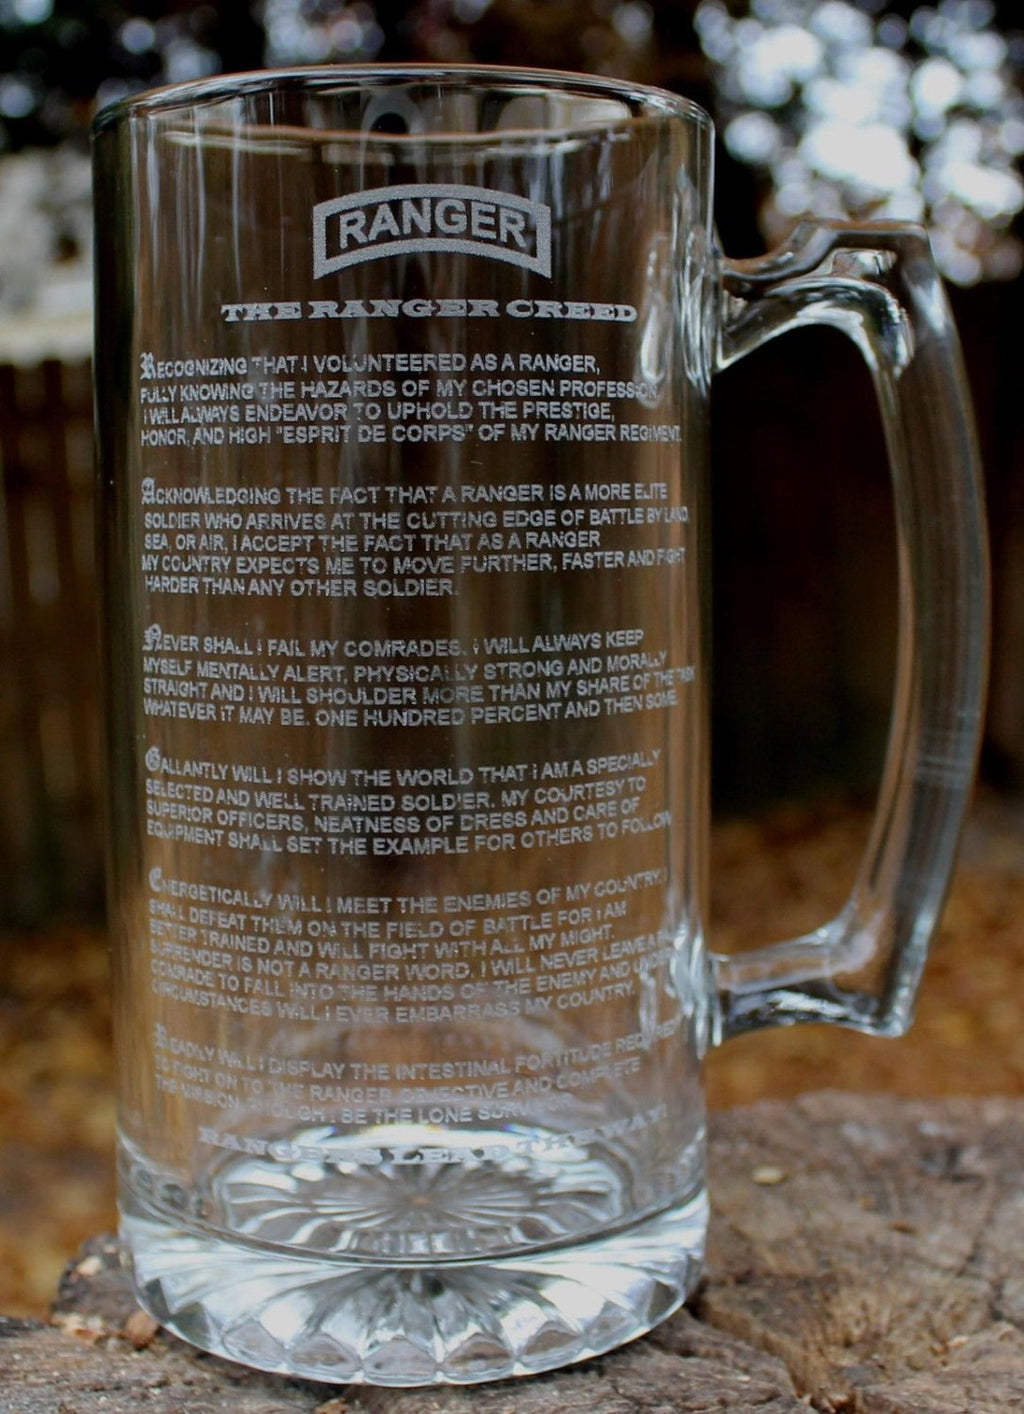 US Army Ranger Creed Beer Mug